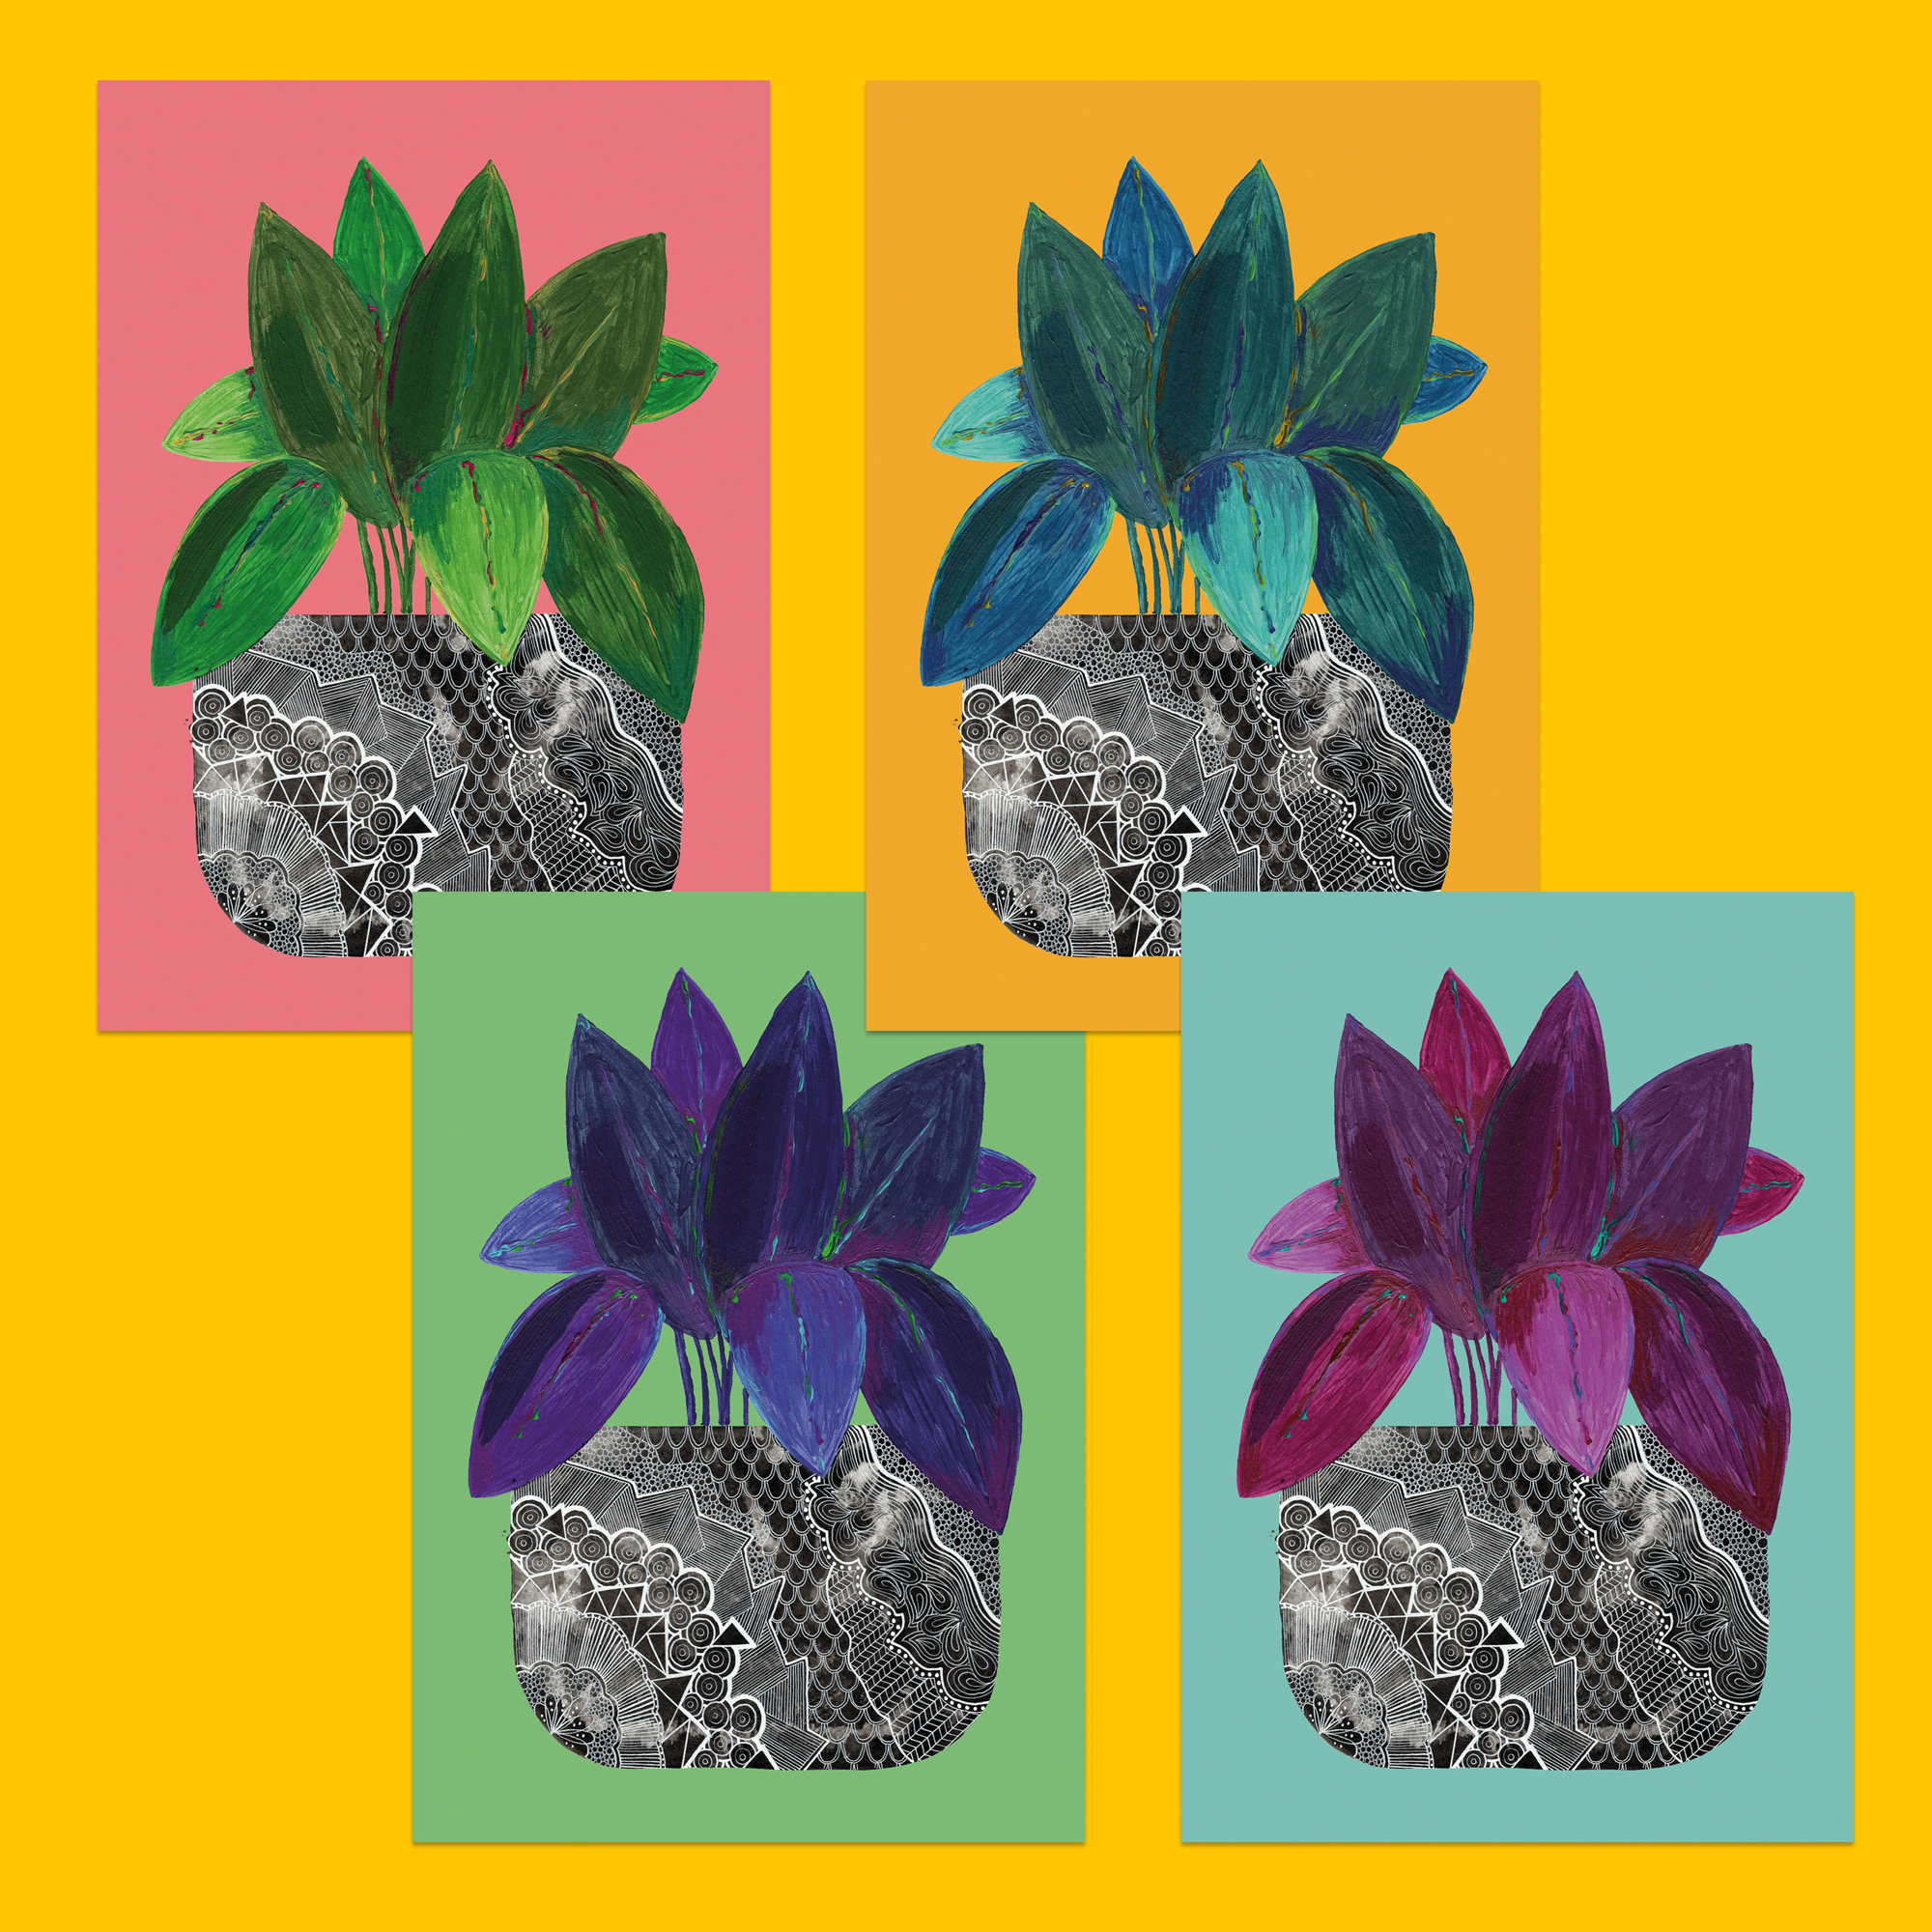 Set of 4 house plant postcards, ideal as a gift for nature lovers and keen gardeners. Can be used as postcards or displayed as botanical mini prints. Printed onto 350gsm uncoated recycled card.